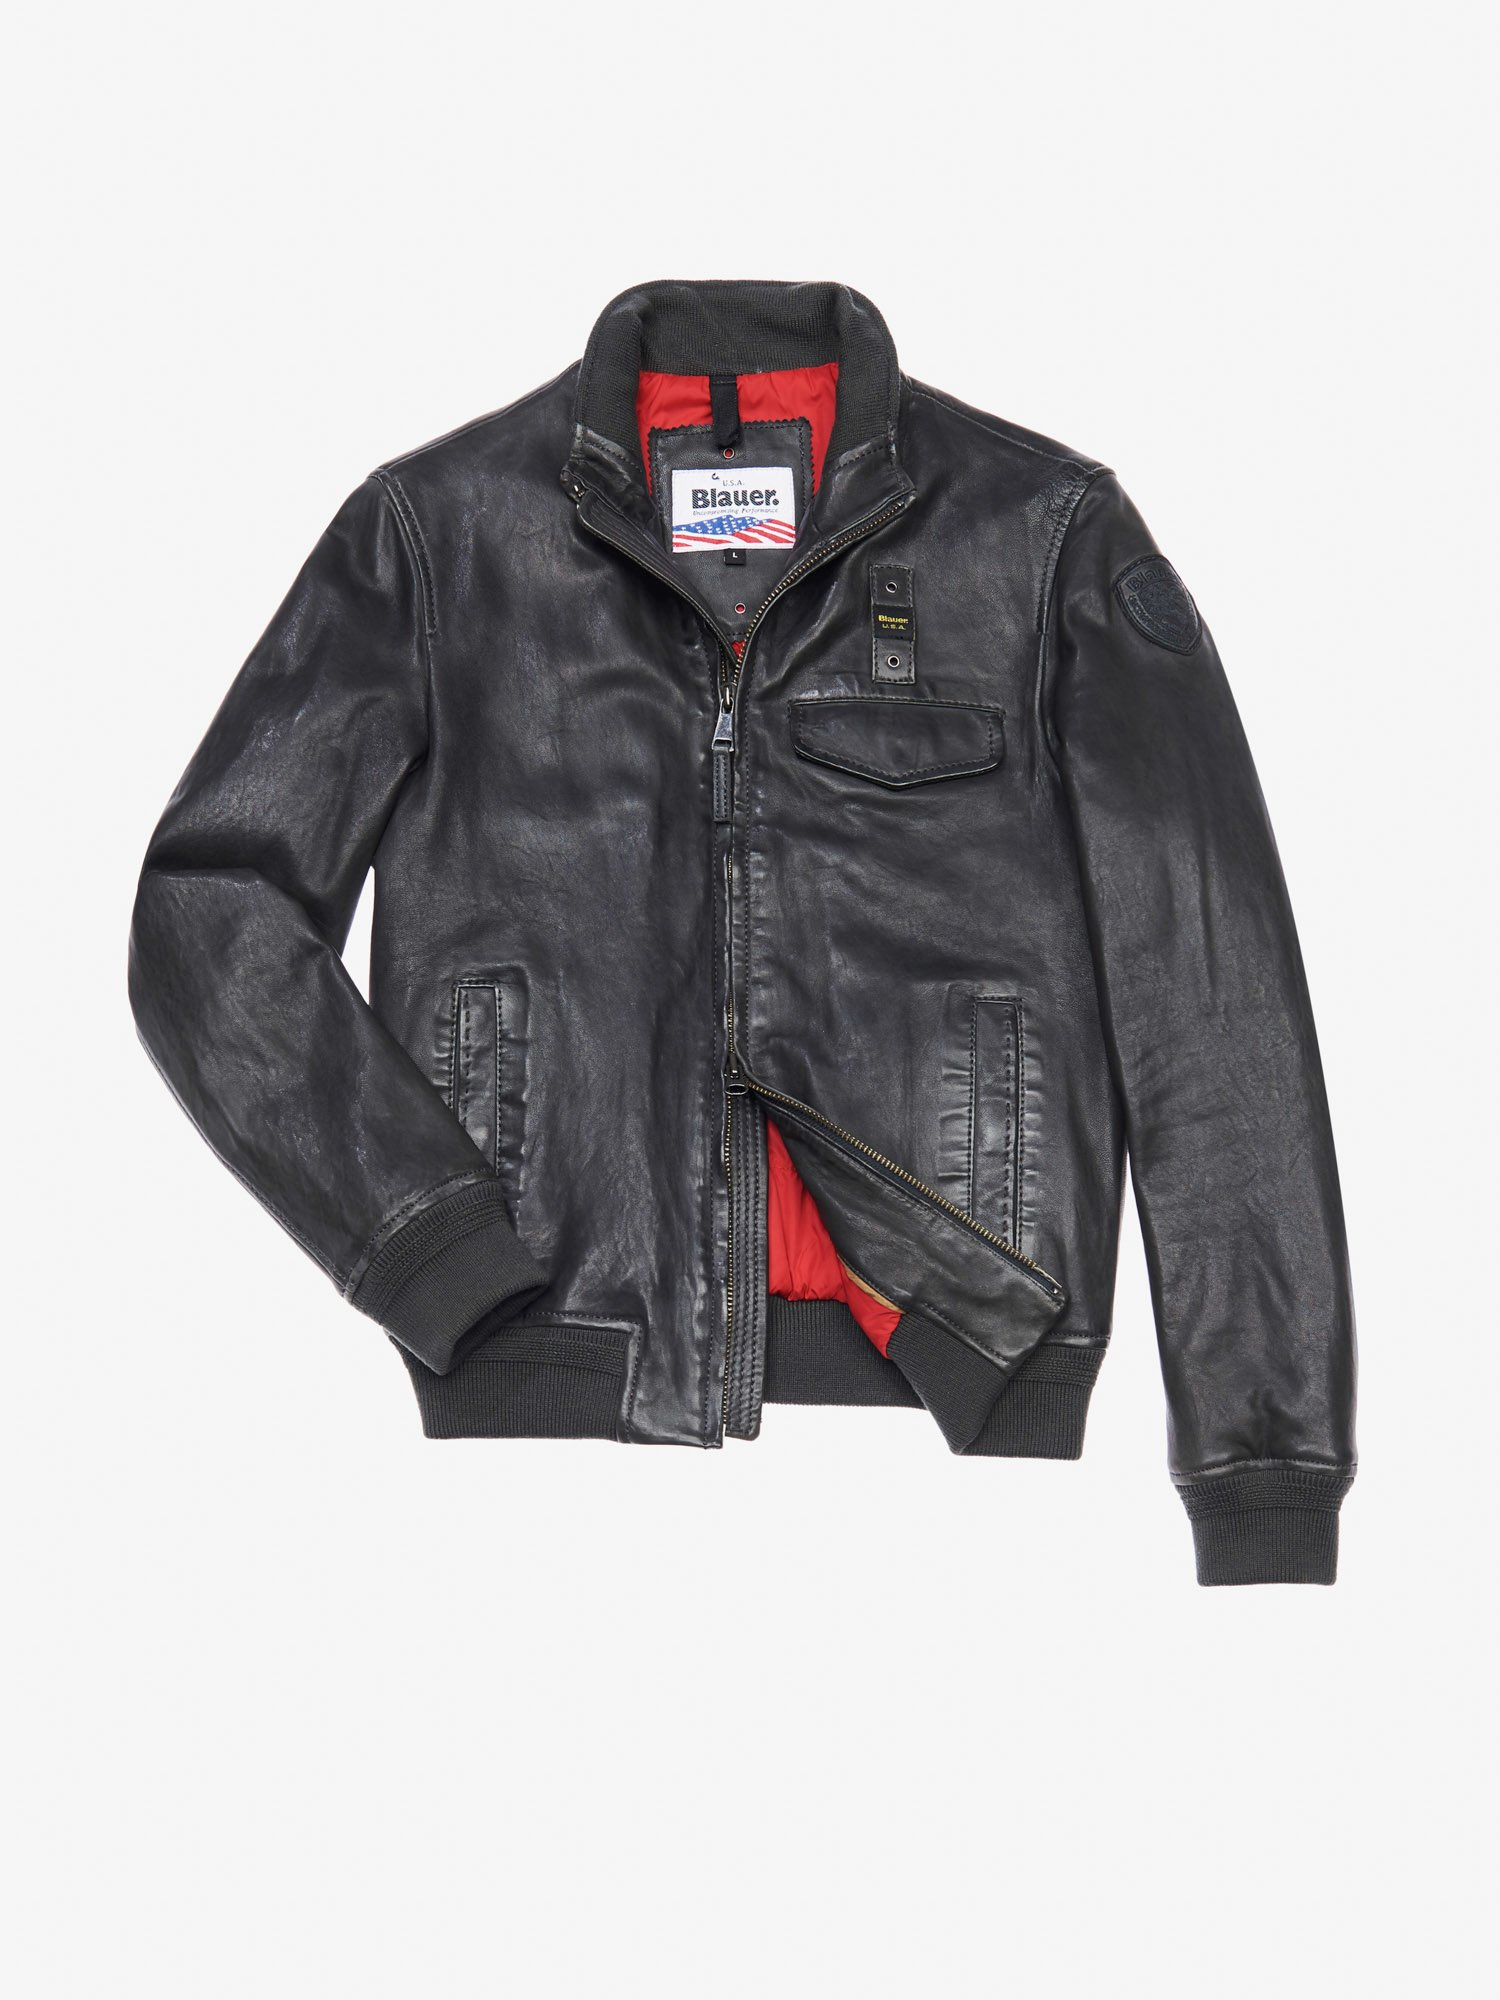 GIORGIO PADDED LEATHER BOMBER JACKET - Blauer